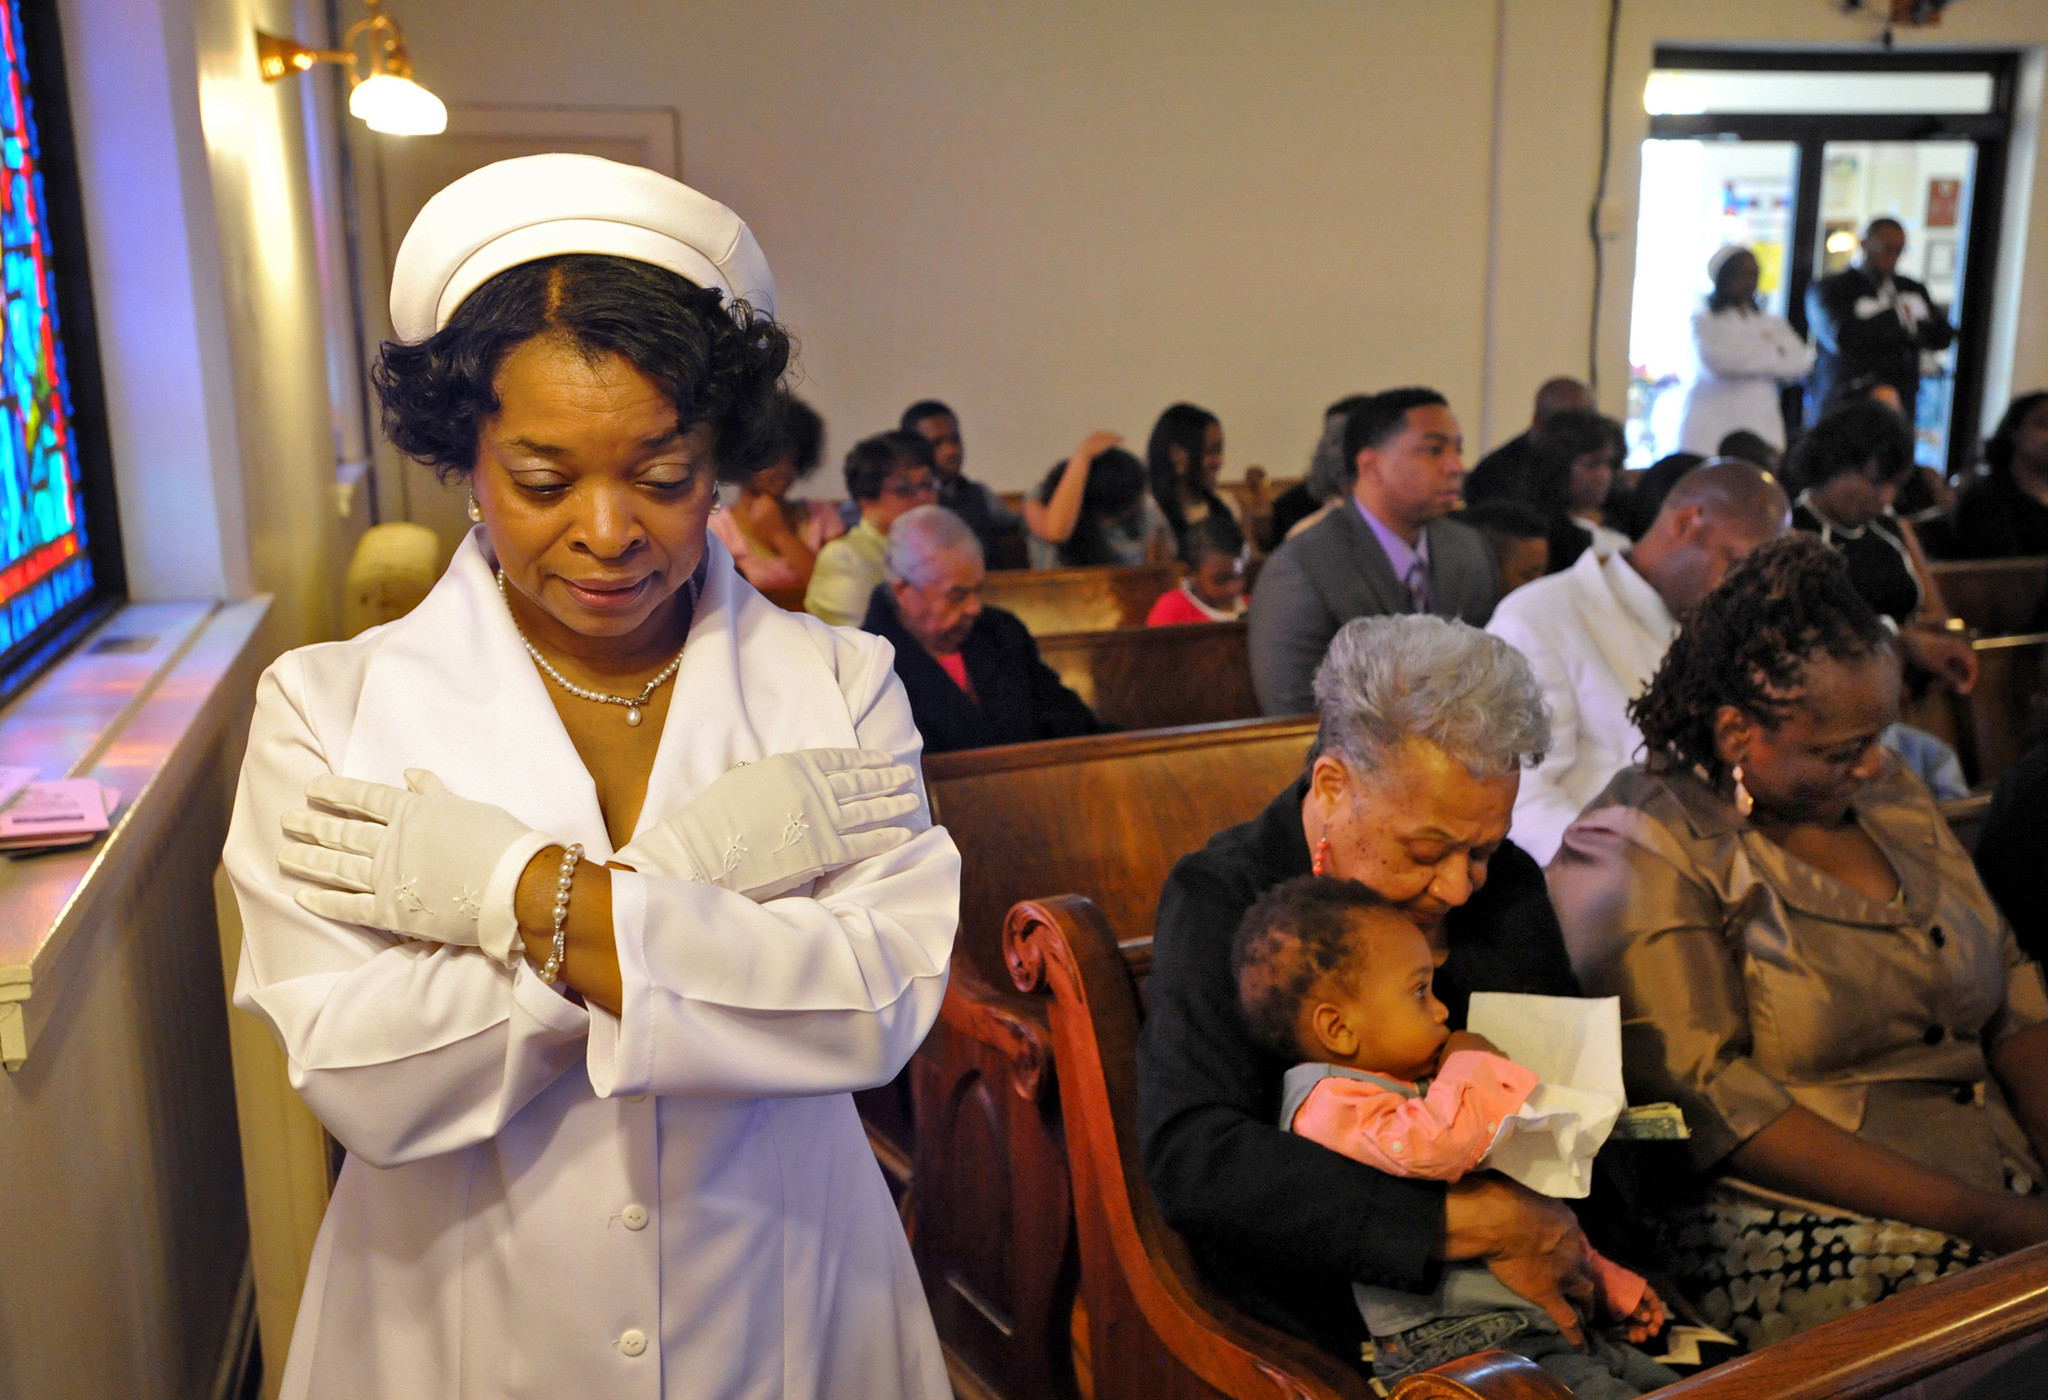 Maryland Group Trains Supports Church Ushers Across State